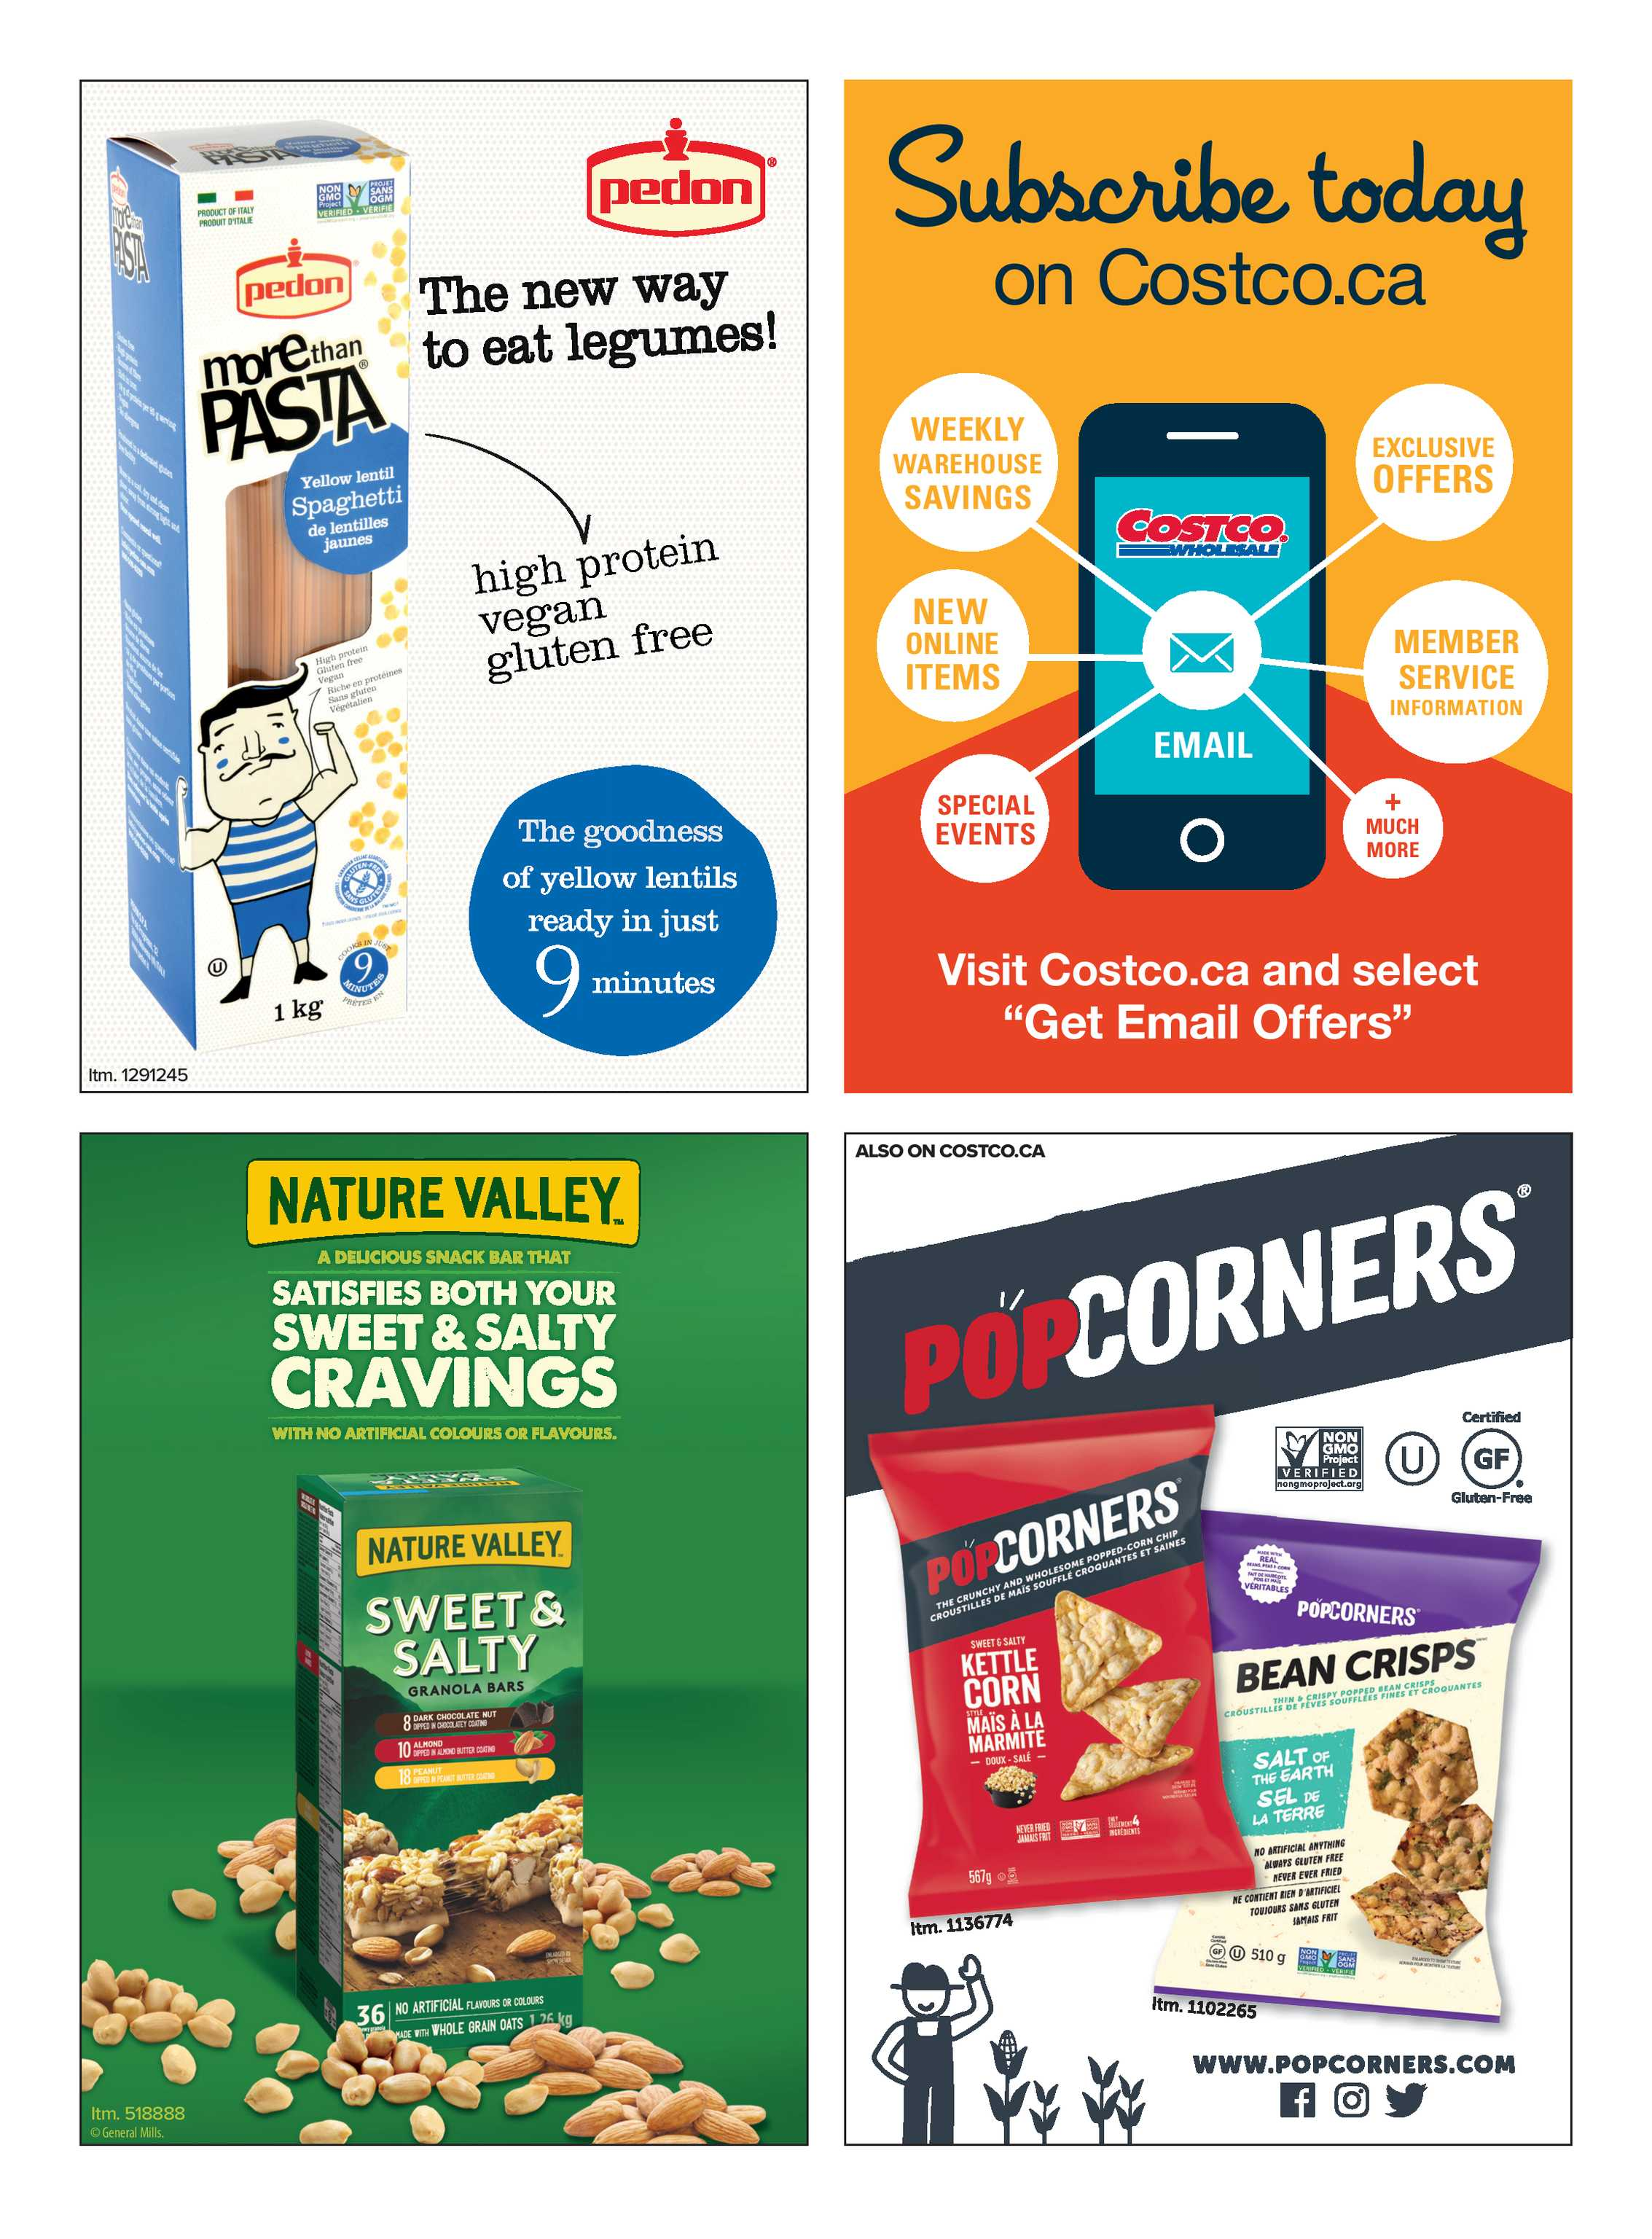 Costco Connection - September/October 2019 - page 27E